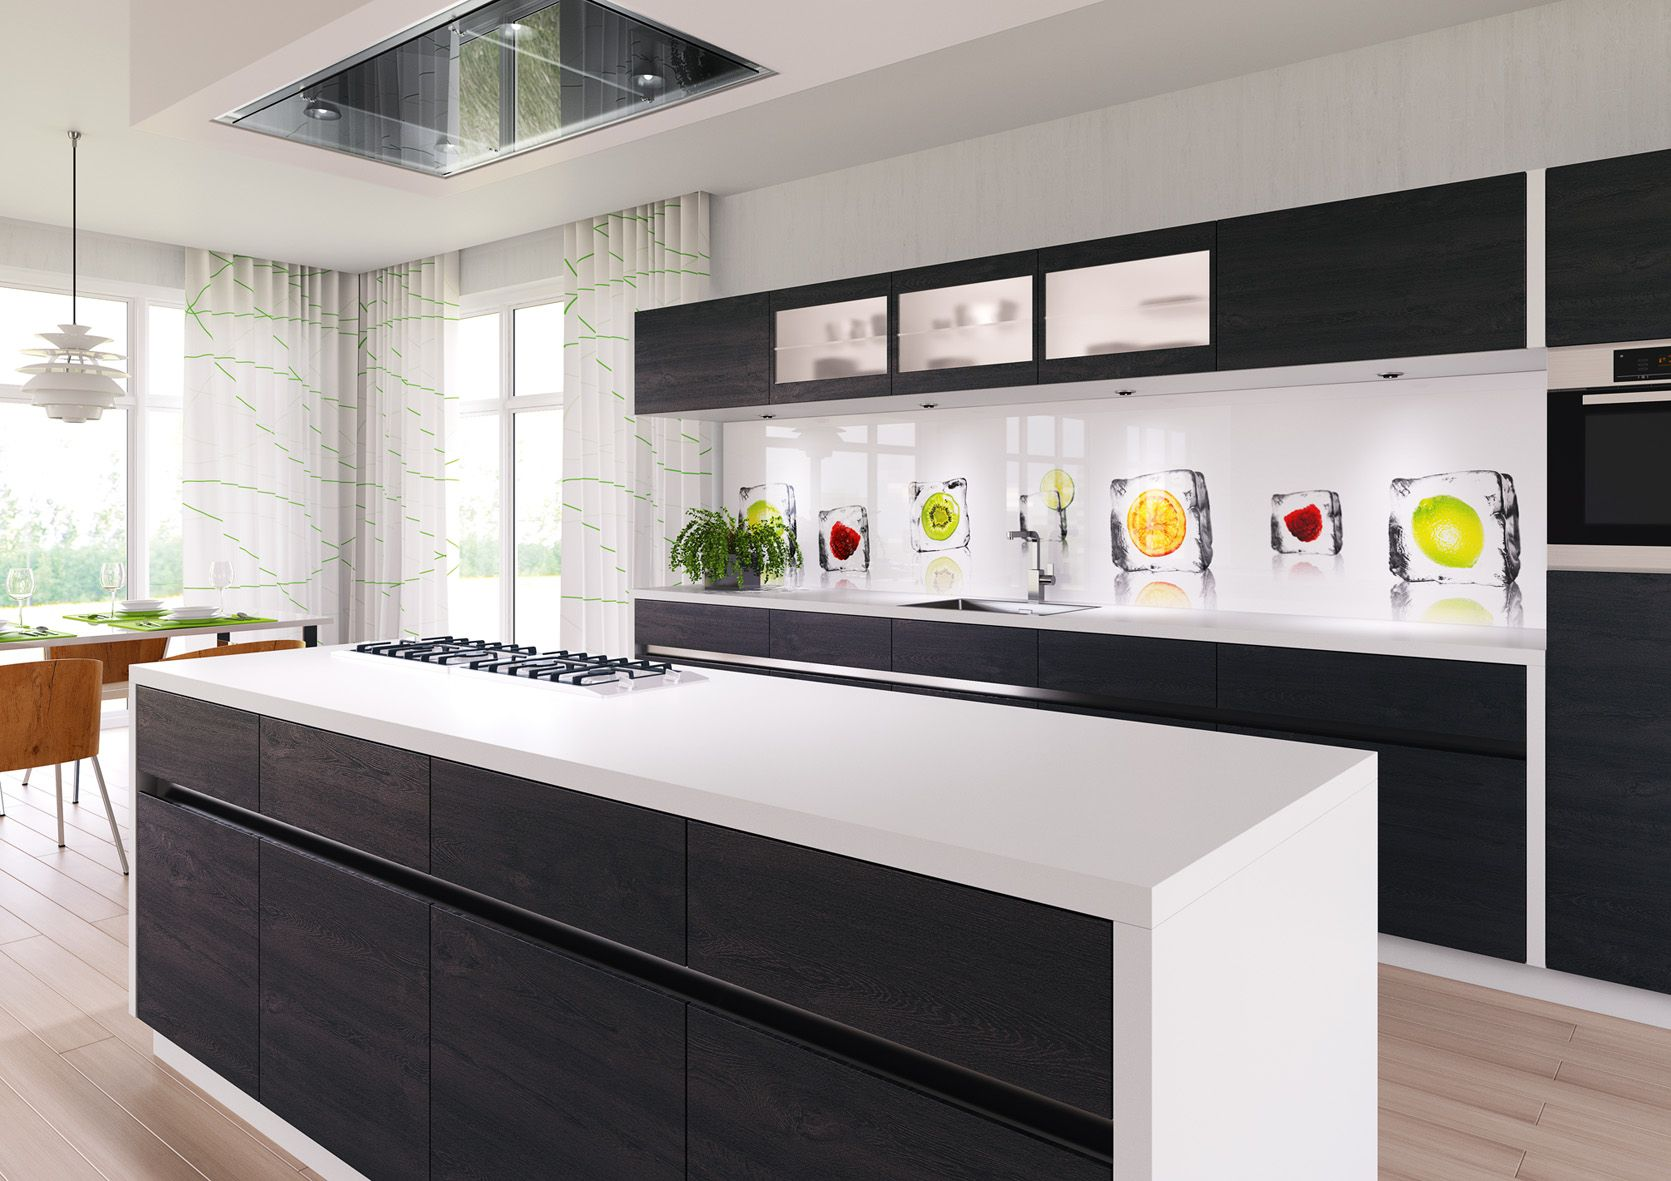 Spritzschutz Küche Glas Kiwi Lechner 39s Quoticecubes Quot Glass Backsplash Splish Back